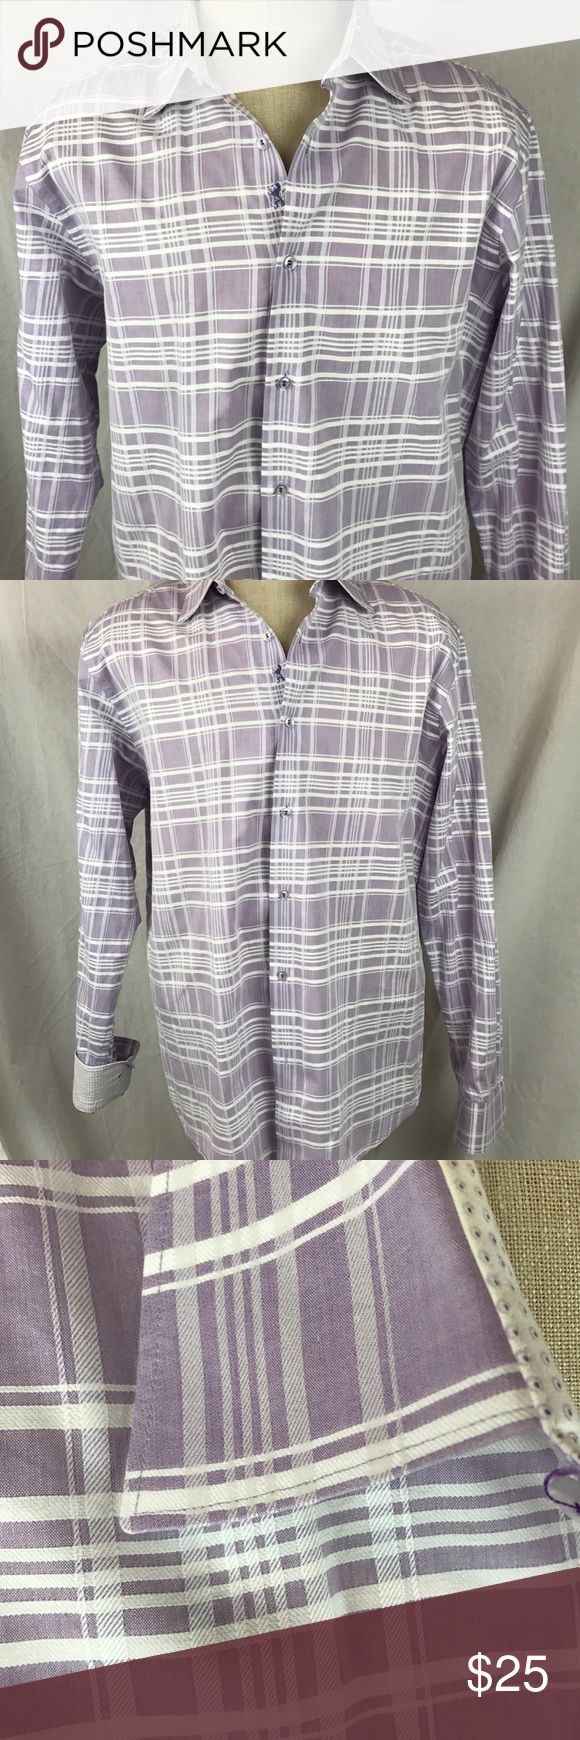 """Bugatchi Mens Shirt Large Shaped Fit Purple Plaid Bugatchi Shirt in very good condition. One small stain to back of inside of collar.   Chest: 24""""  Length: 29""""  Sleeve: 34/35""""    Thanks for looking!   L Bugatchi Shirts Casual Button Down Shirts"""